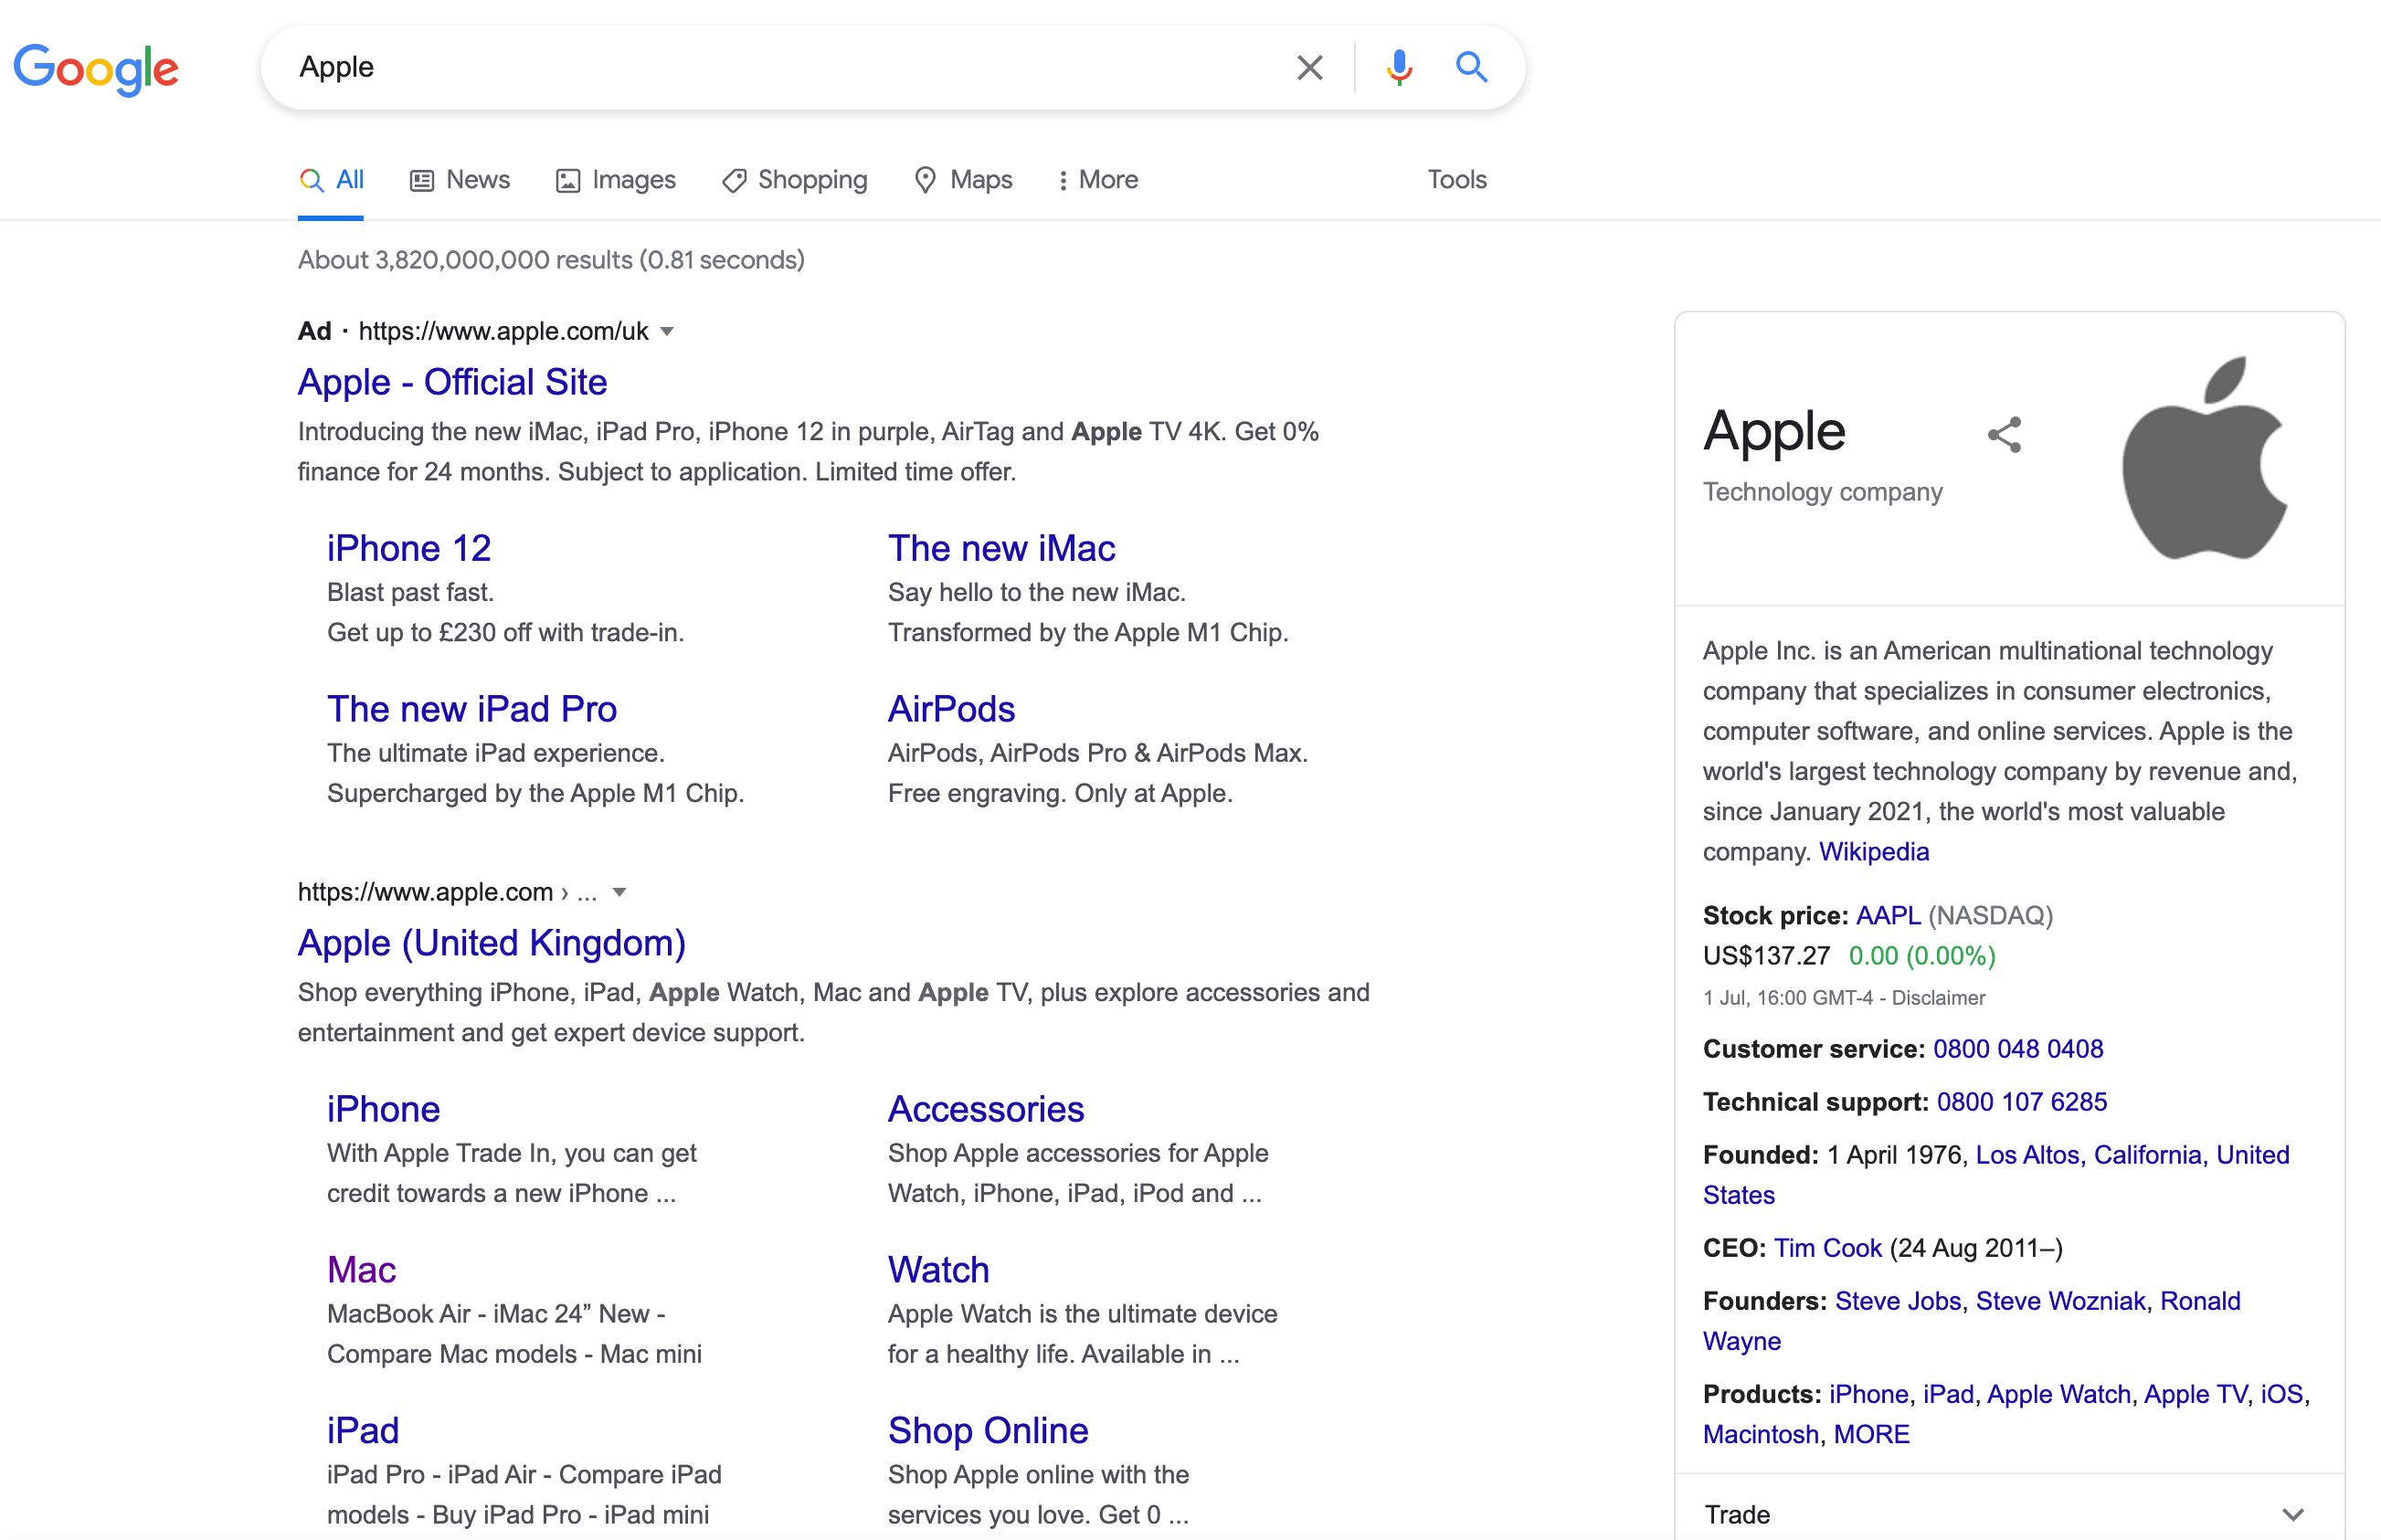 Example of a navigational search intent query on Google